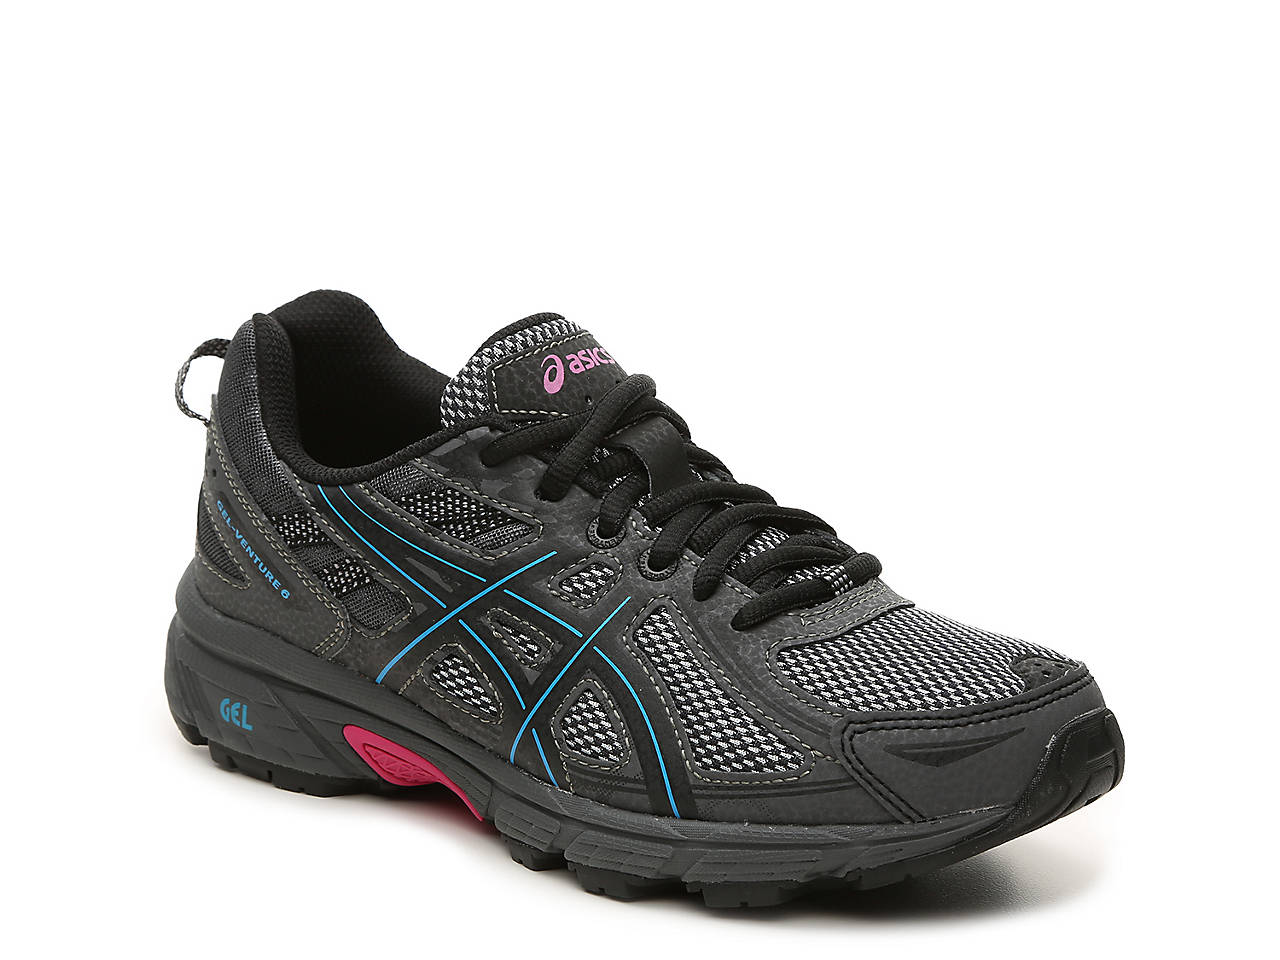 ASICS GEL-Venture 6 Women's ... Trail Running Shoes reliable cheap price buy cheap get to buy free shipping latest collections best place online tY2OYtV